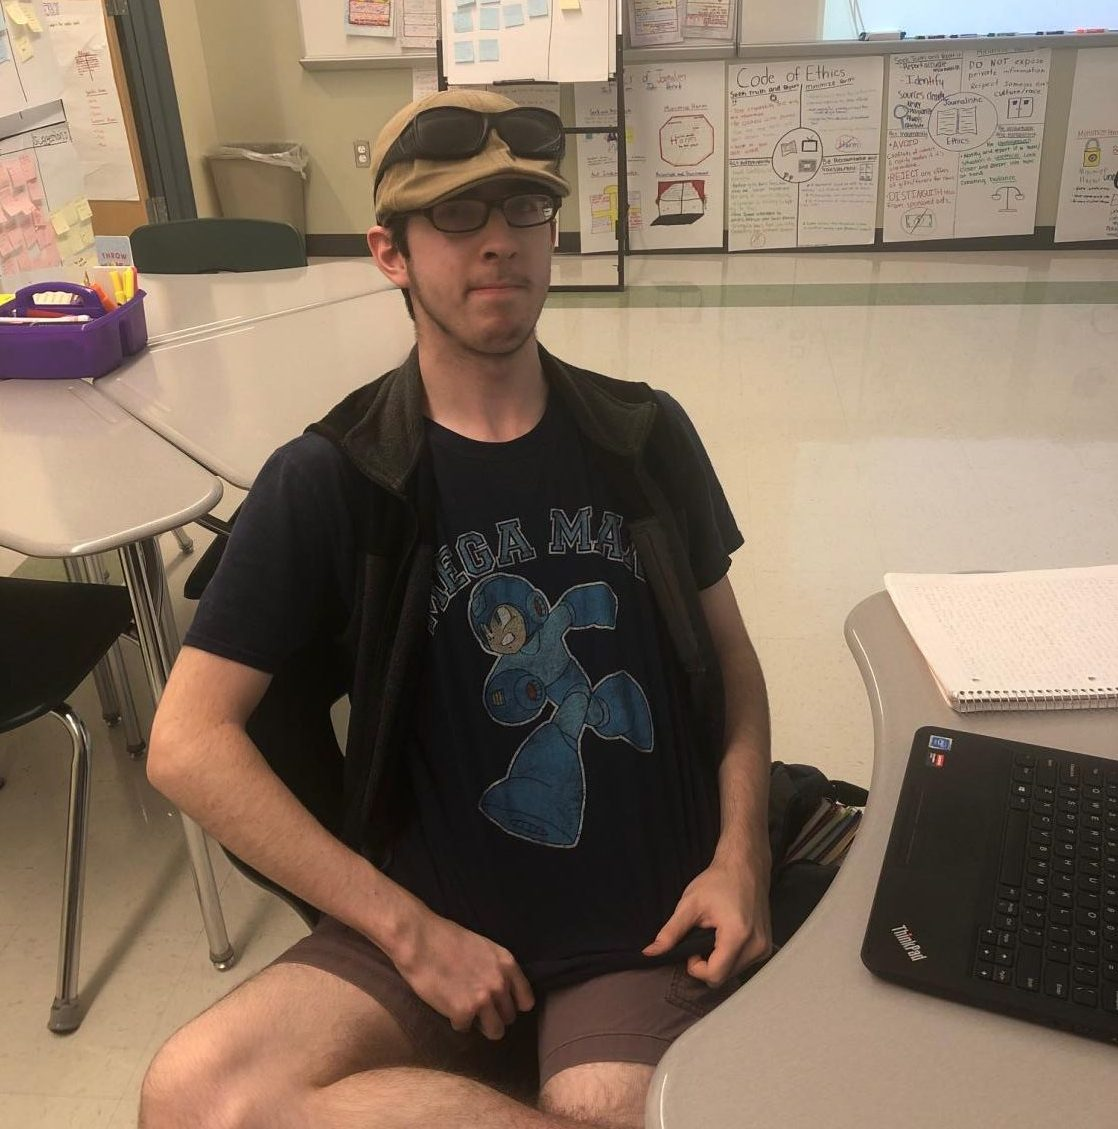 AHS+student+Connor+Lee%2C+Class+of+2021%2C+wears+a+dark+blue+T-shirt+in+his+English+class+in+recognition+of+World+Bullying+Prevention+Day+on+Monday%2C+Oct.+7%2C+2019.++